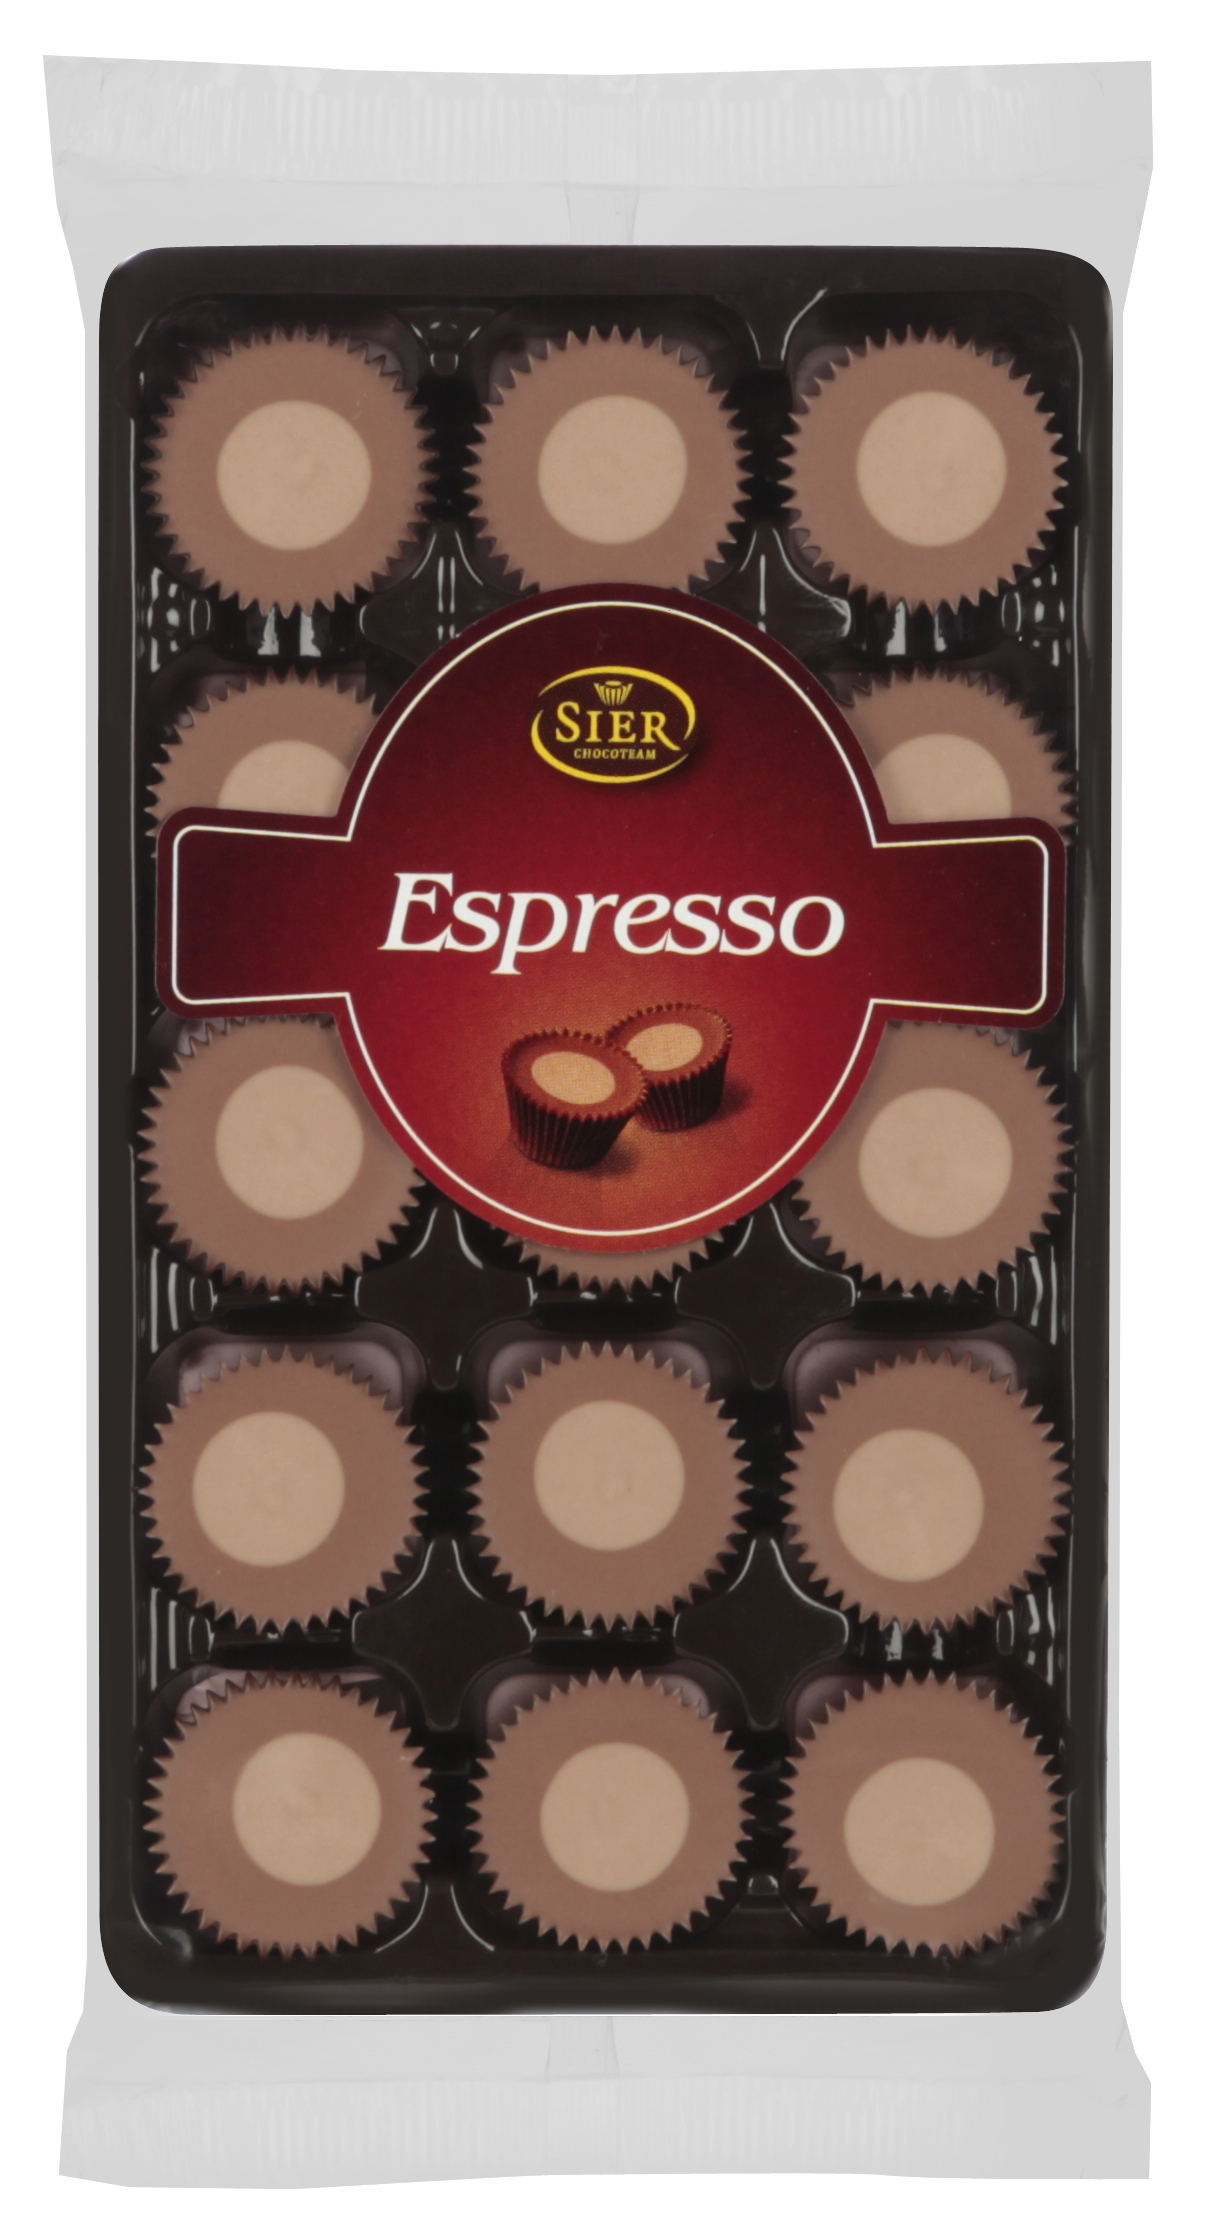 Sier Espresso Chocolate Ice Cups 4.4oz from http://www.thedutchstore ...